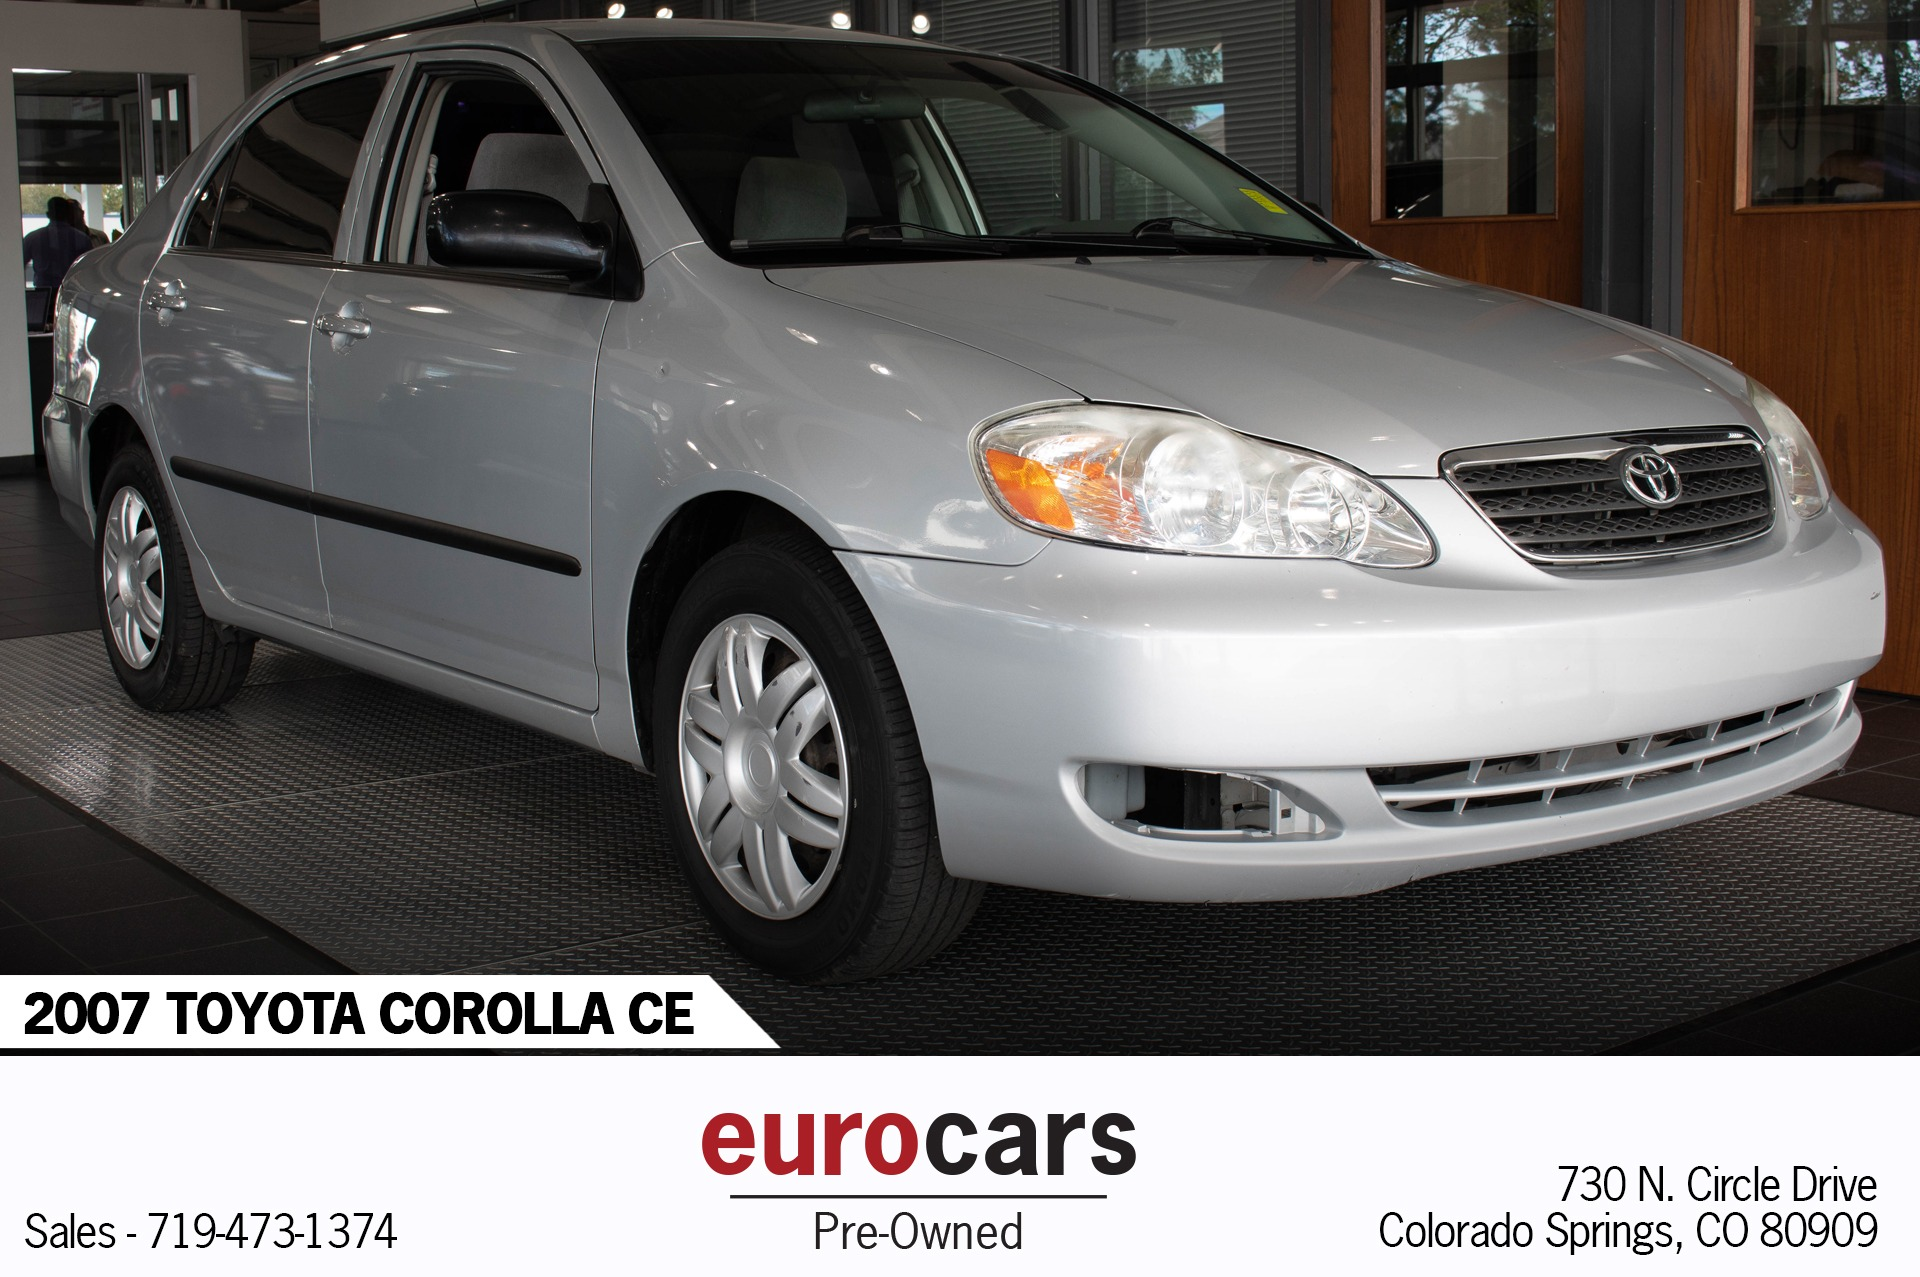 Used toyota Corolla for Sale Elegant 2007 toyota Corolla Ce Stock E1206a for Sale Near Colorado Springs